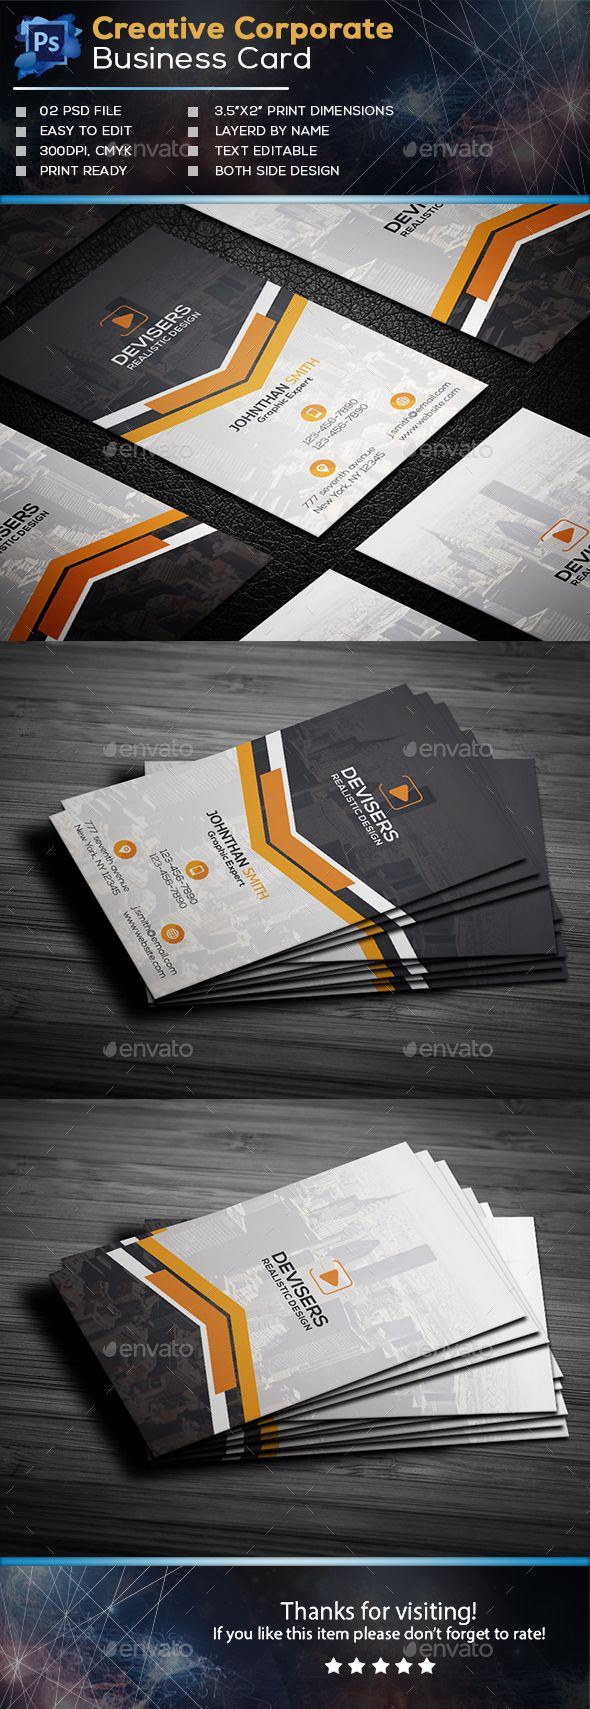 211 best business cards images on pinterest visit cards business corporate business card template psd wajeb Images